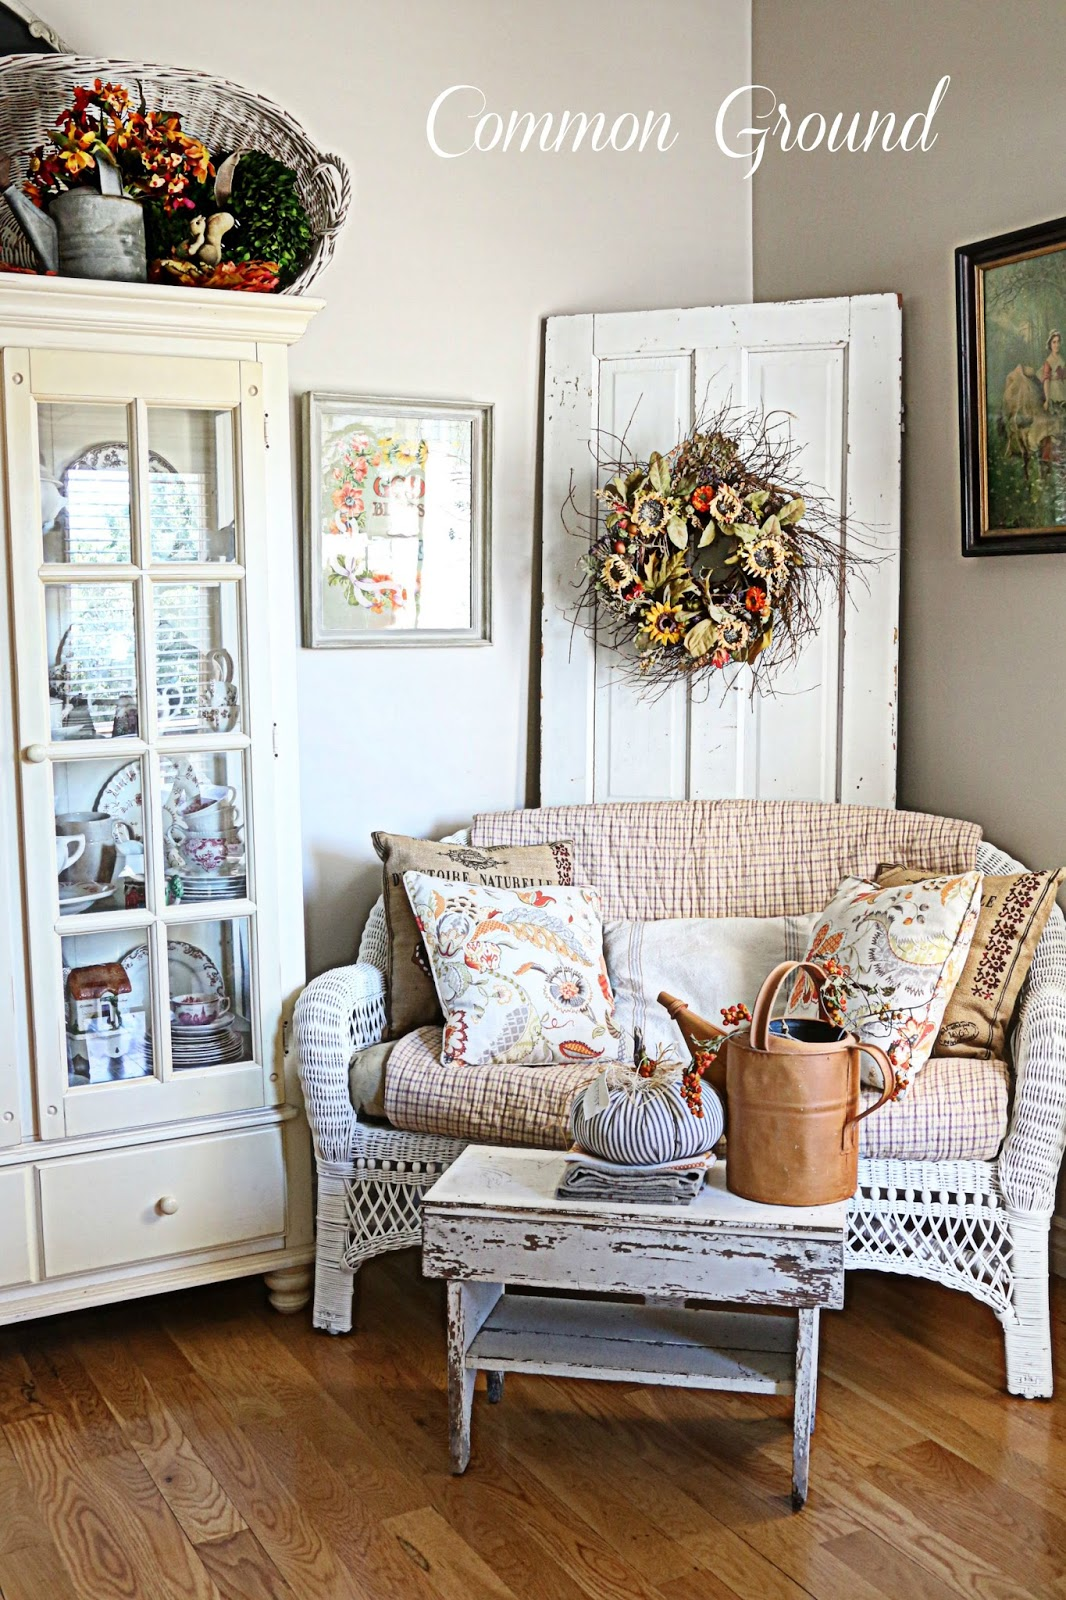 common ground kitchen sitting area dressed for fall. Black Bedroom Furniture Sets. Home Design Ideas